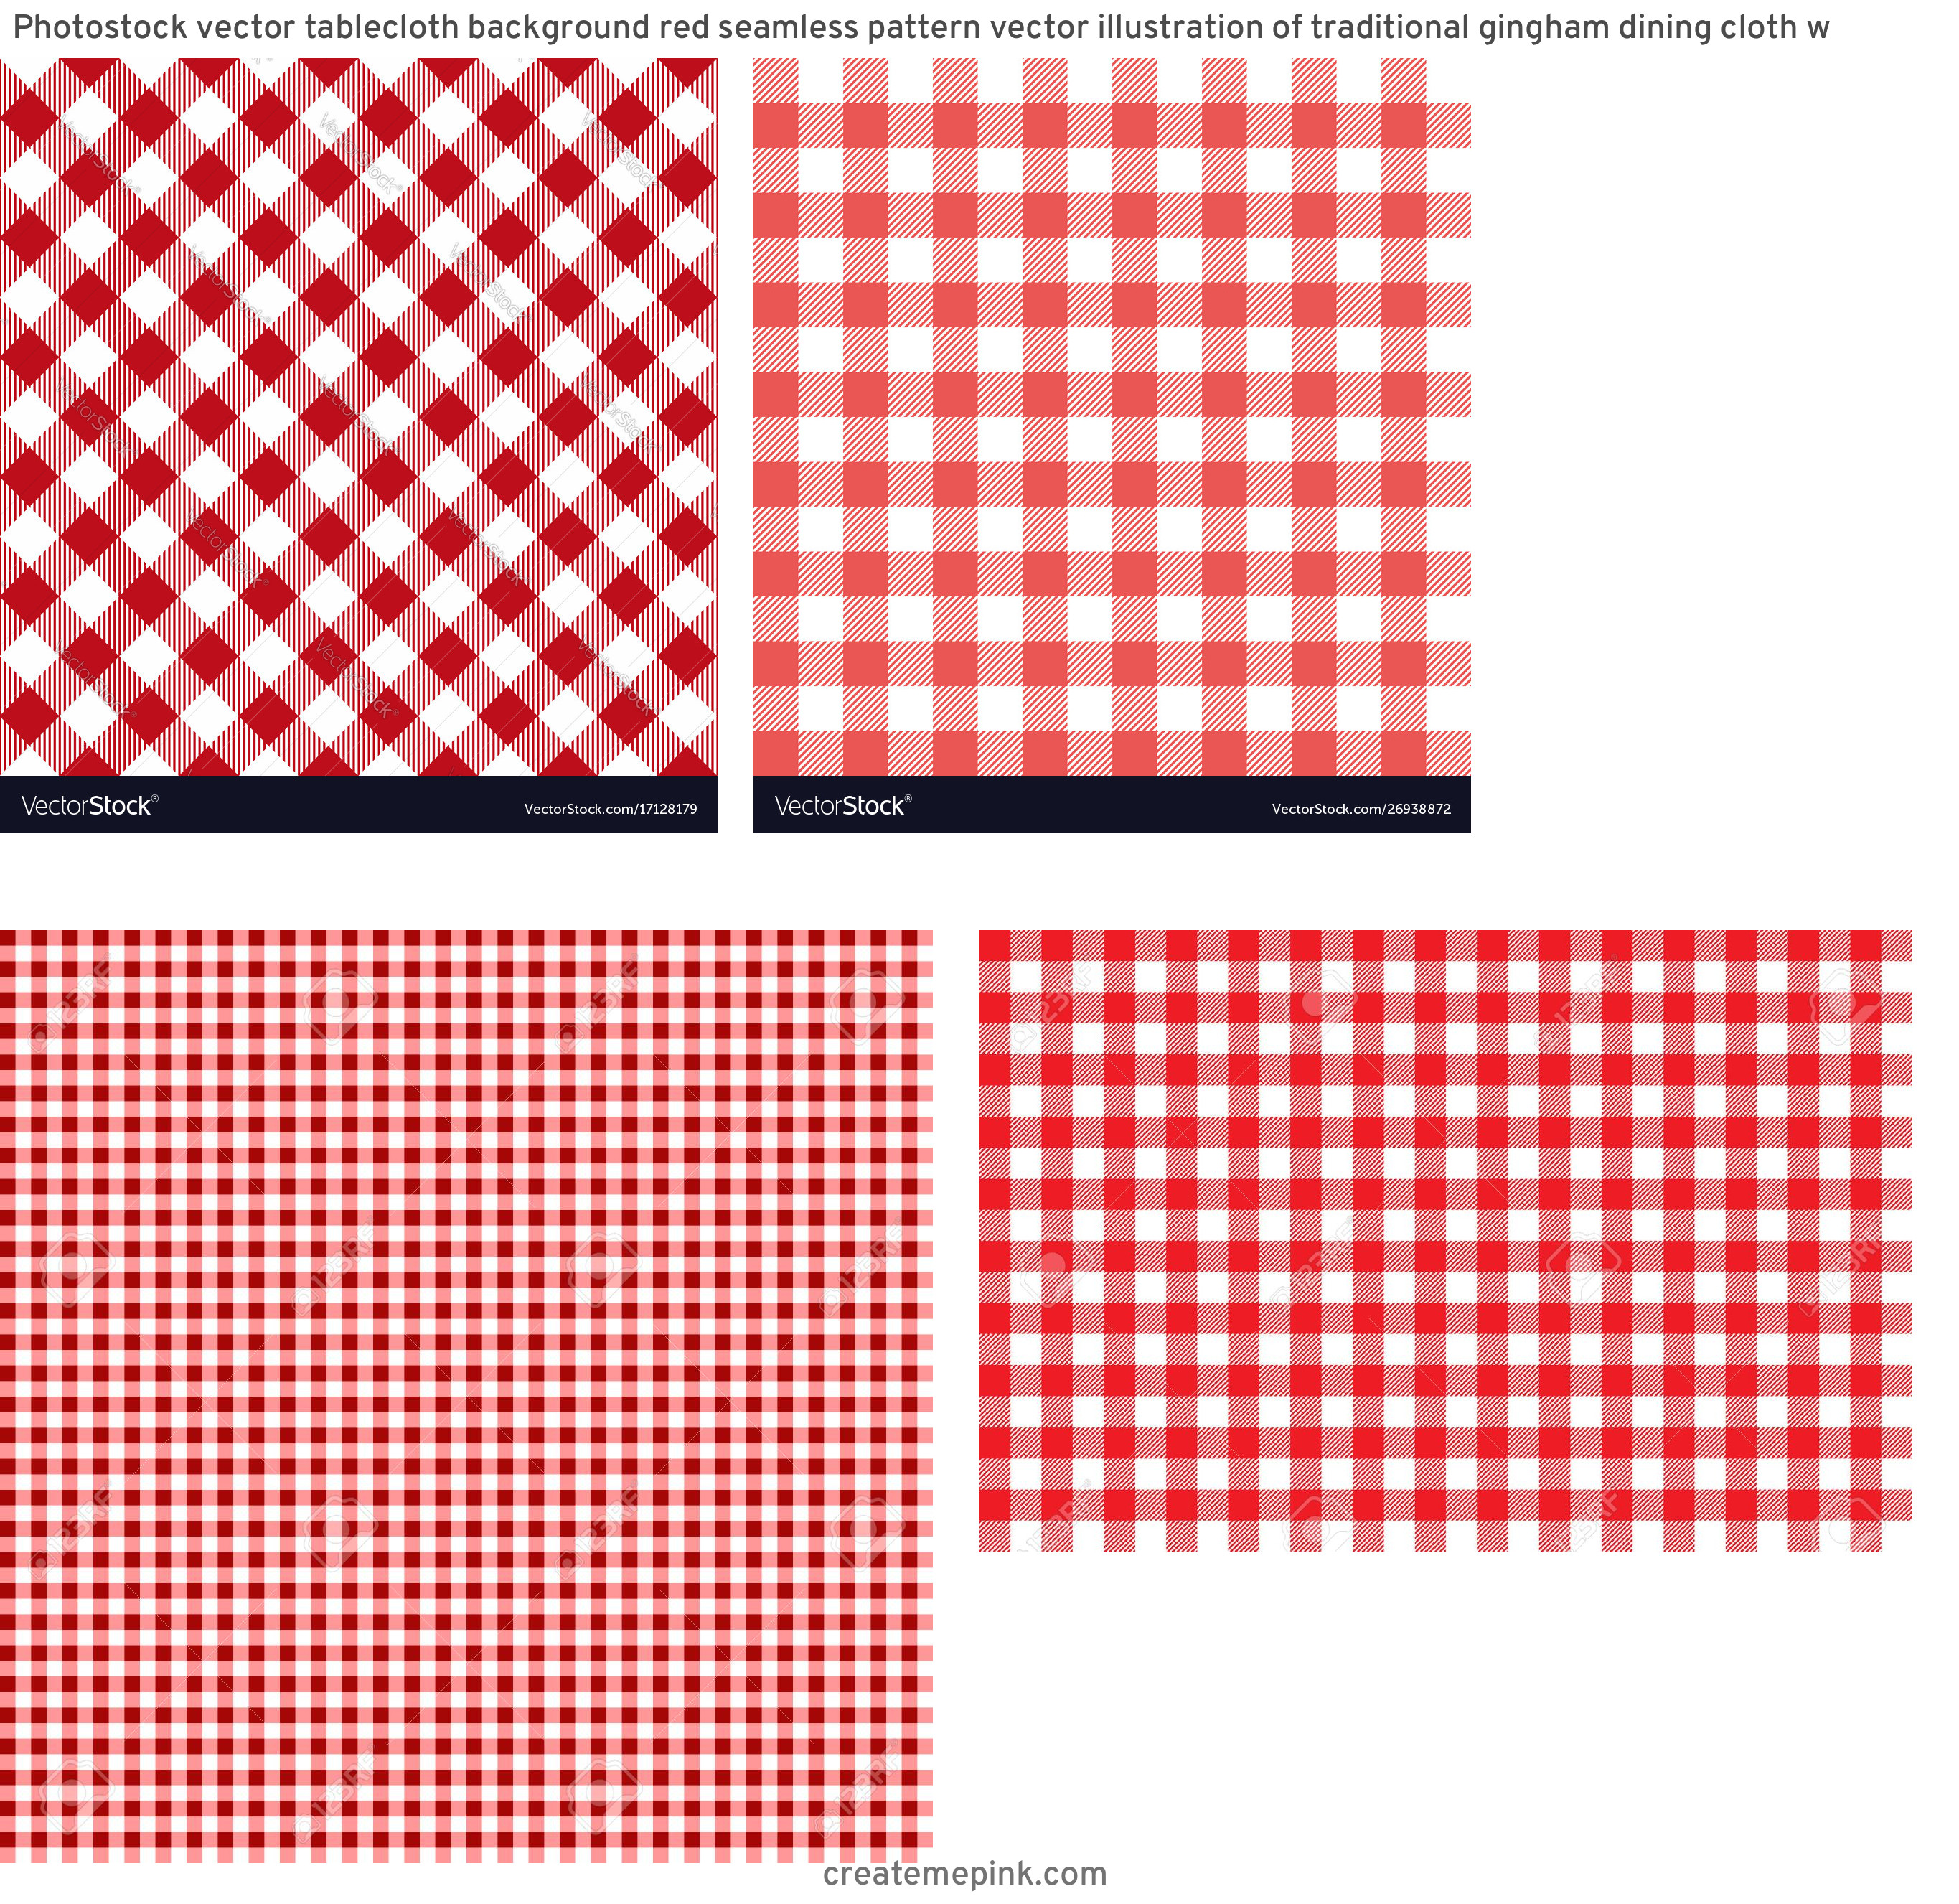 Picnic Cloth Vector: Photostock Vector Tablecloth Background Red Seamless Pattern Vector Illustration Of Traditional Gingham Dining Cloth W